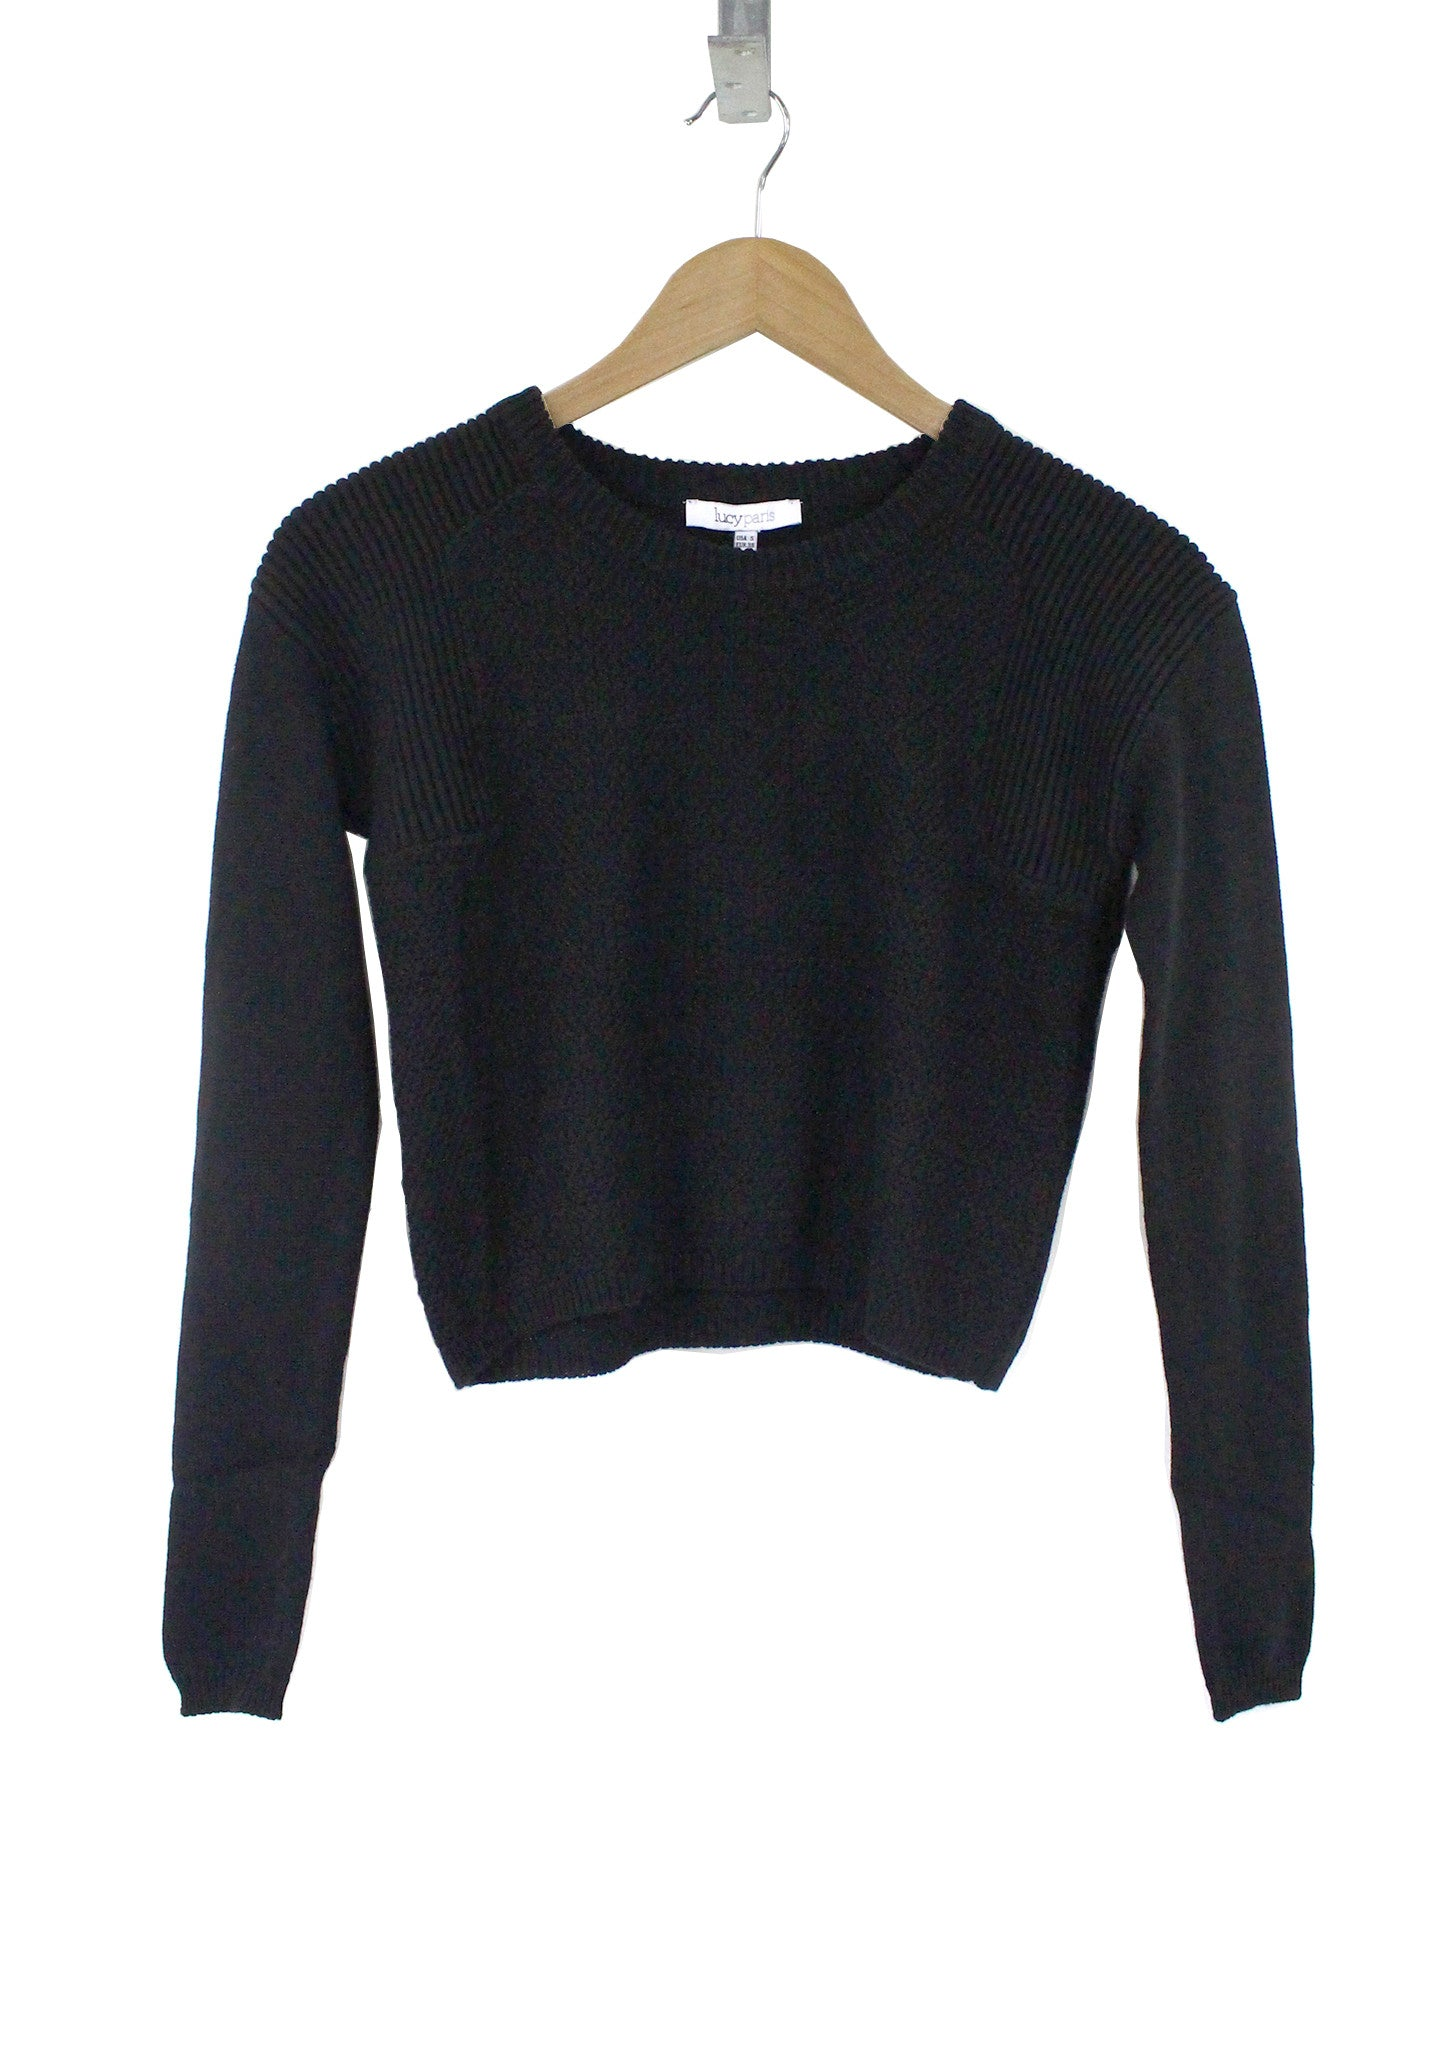 Rebekah Cropped Sweater